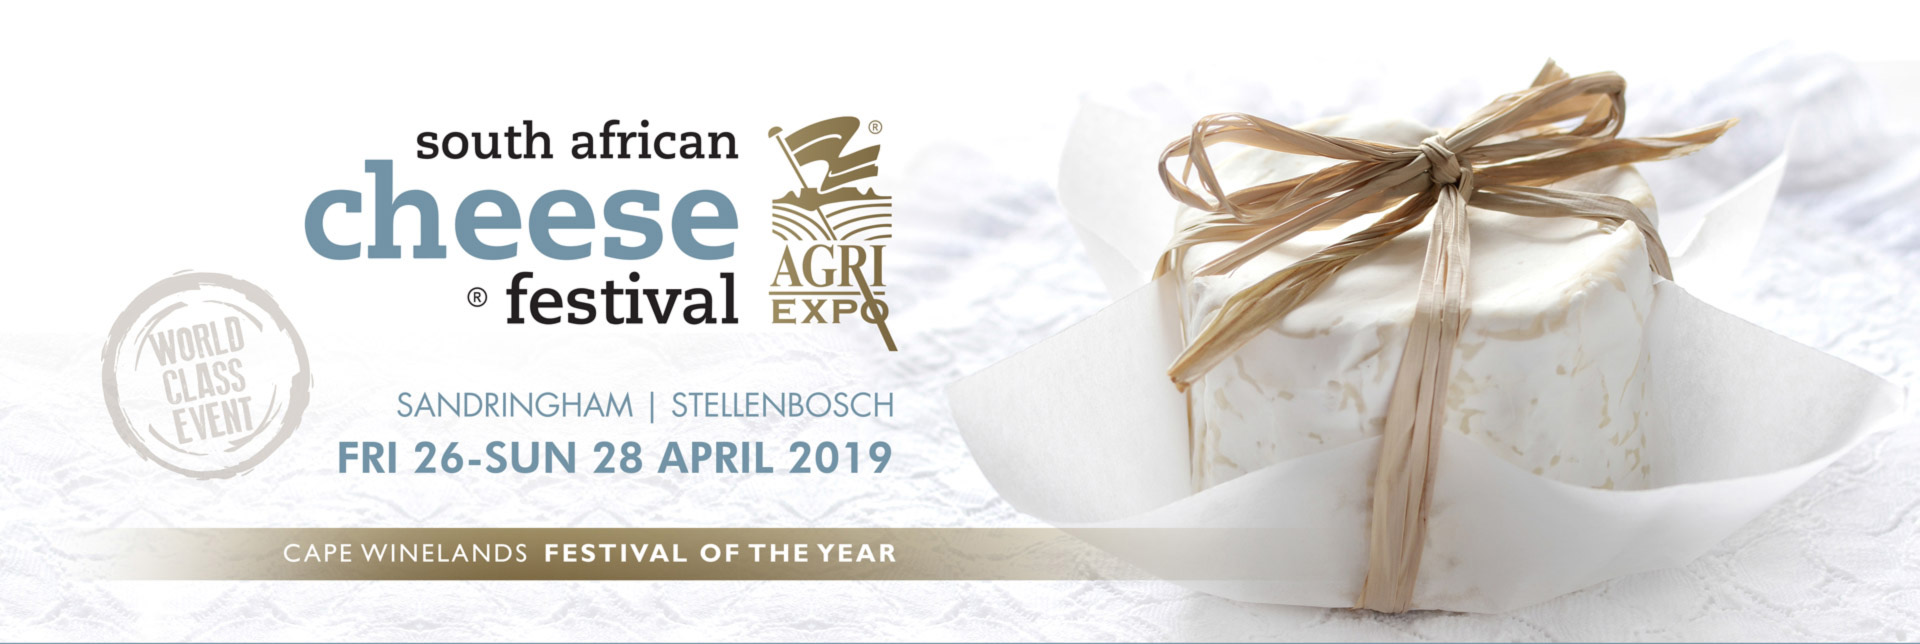 South African Cheese Festival 2019